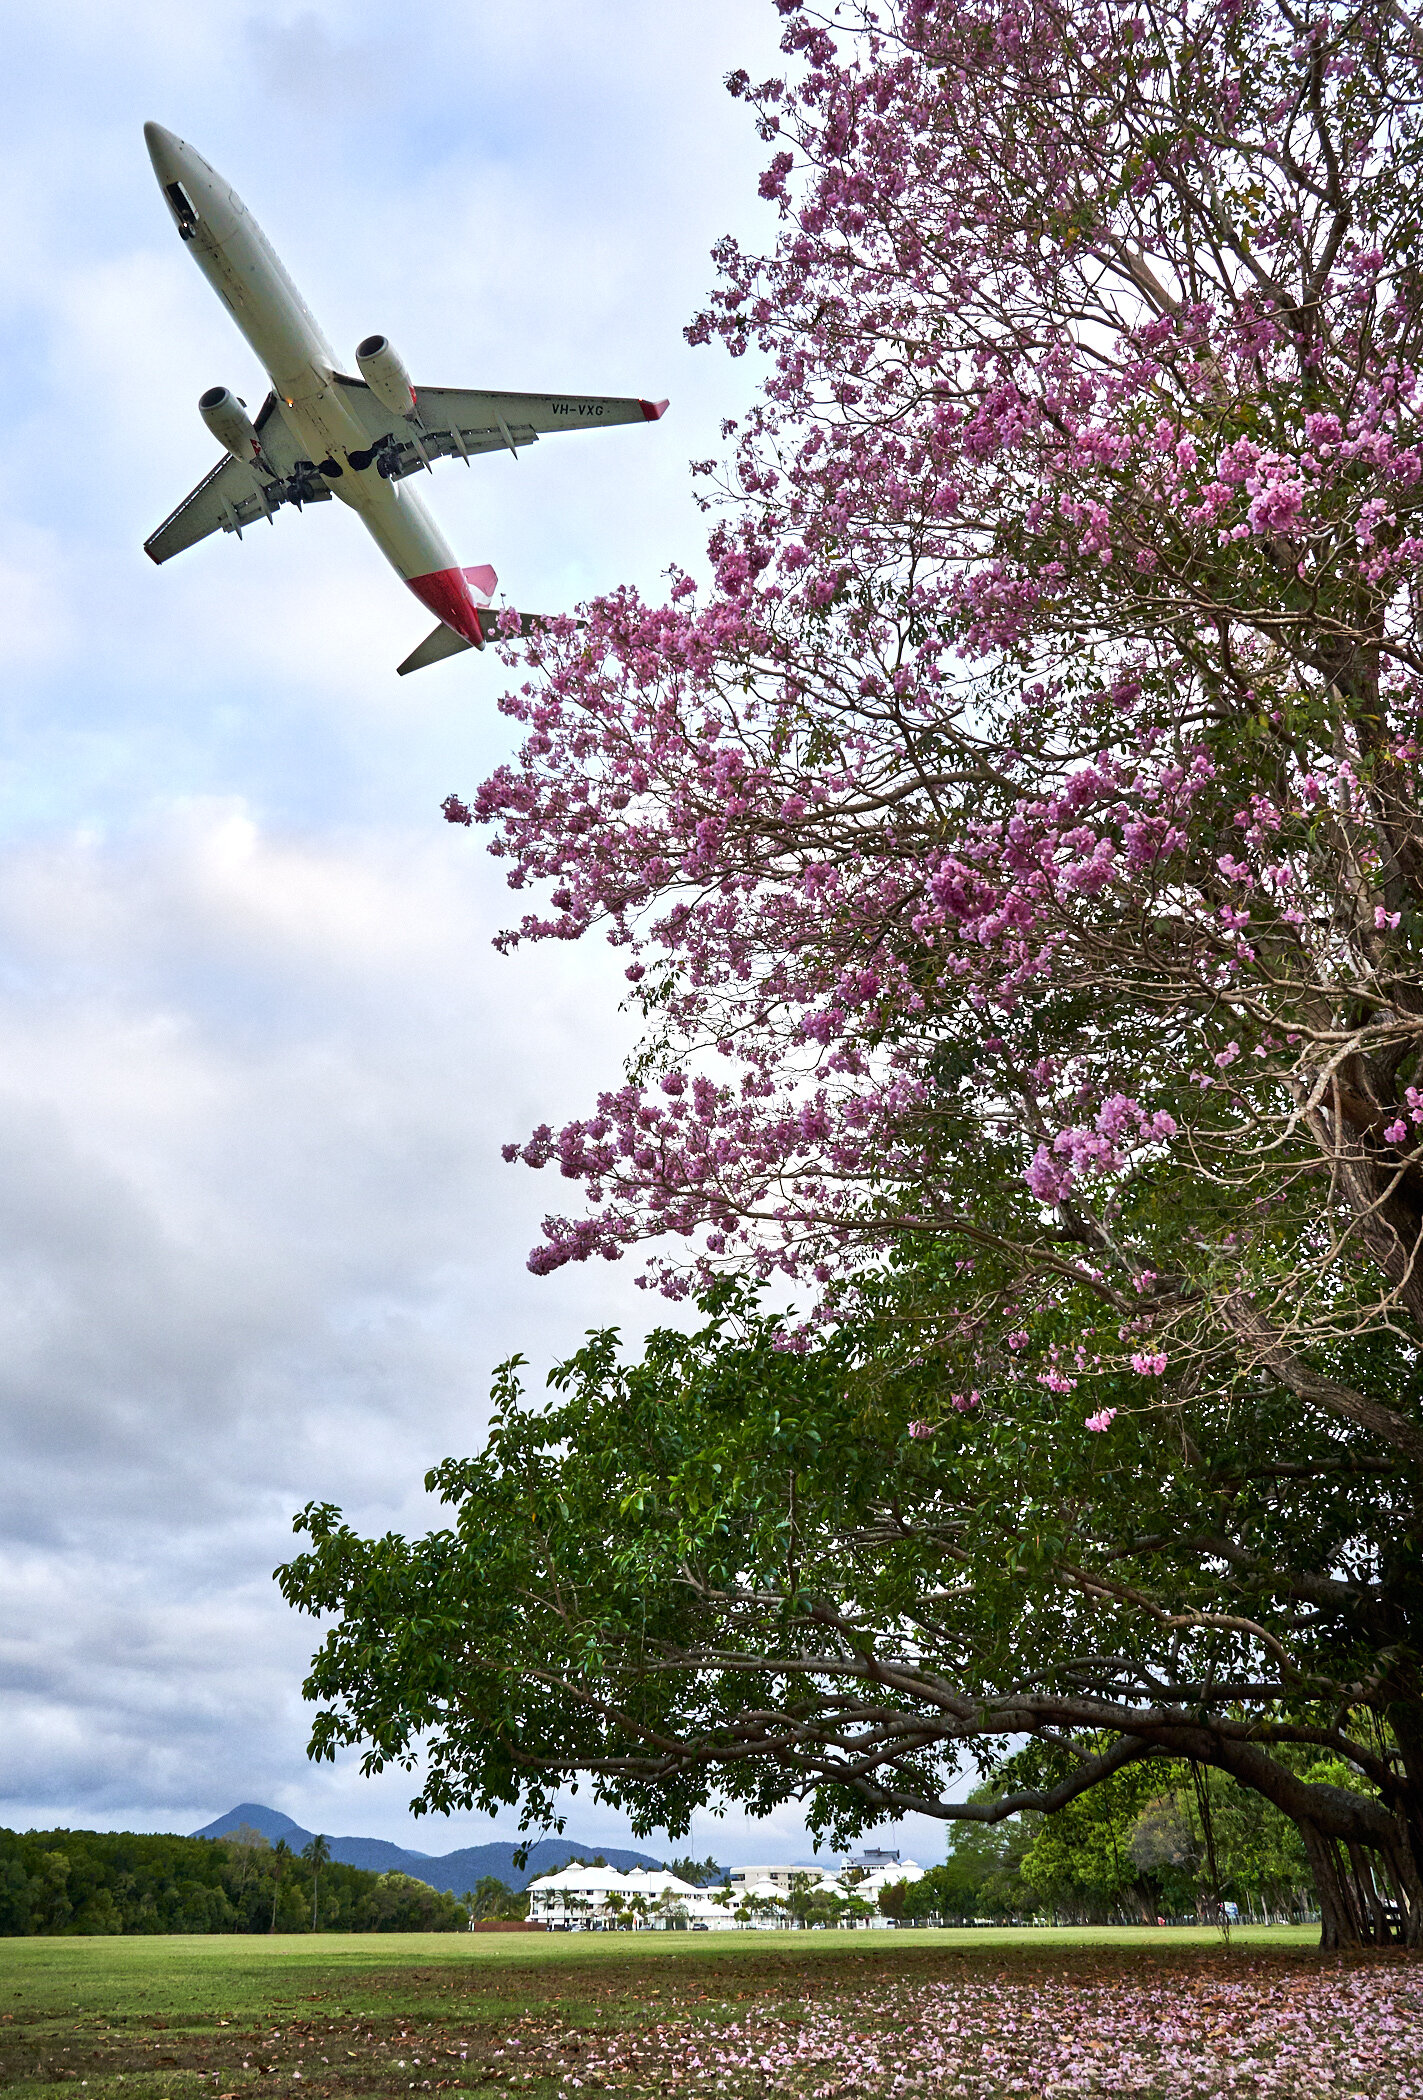 Qantas flight passing over parkland at the end of the Esplanade. October 2019